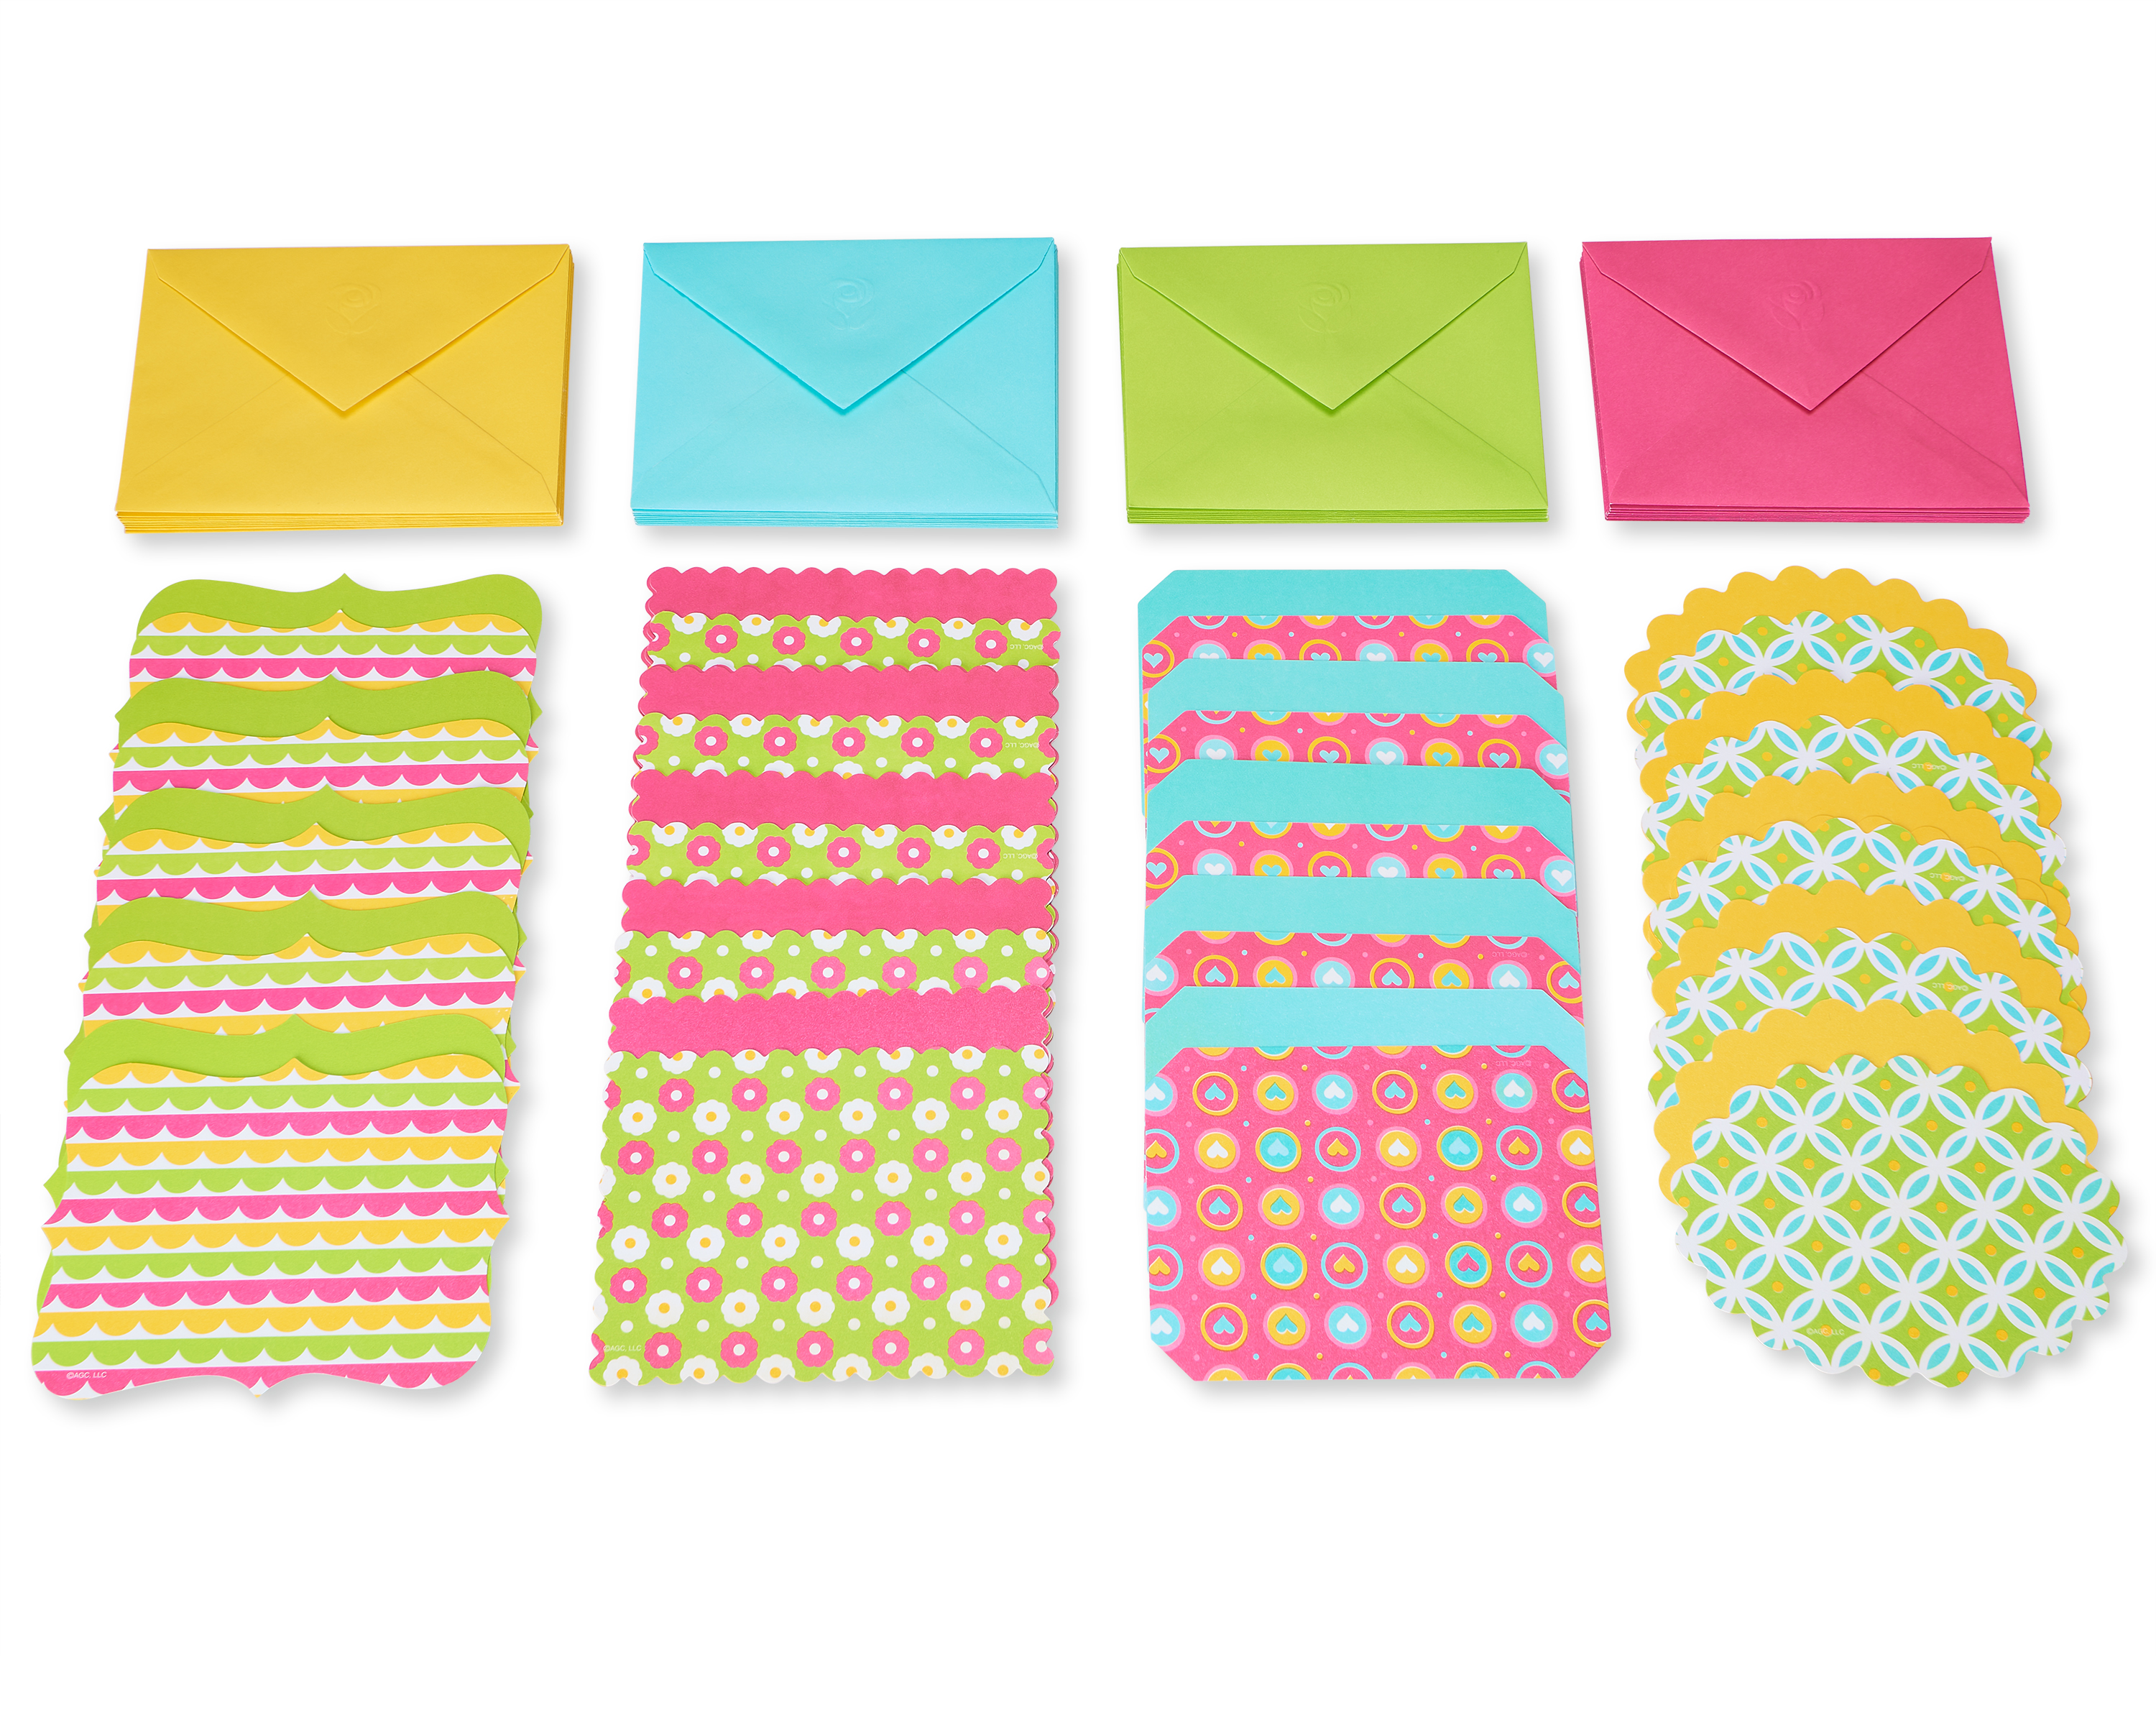 American Greetings Patterned Blank Note Cards And Envelopes